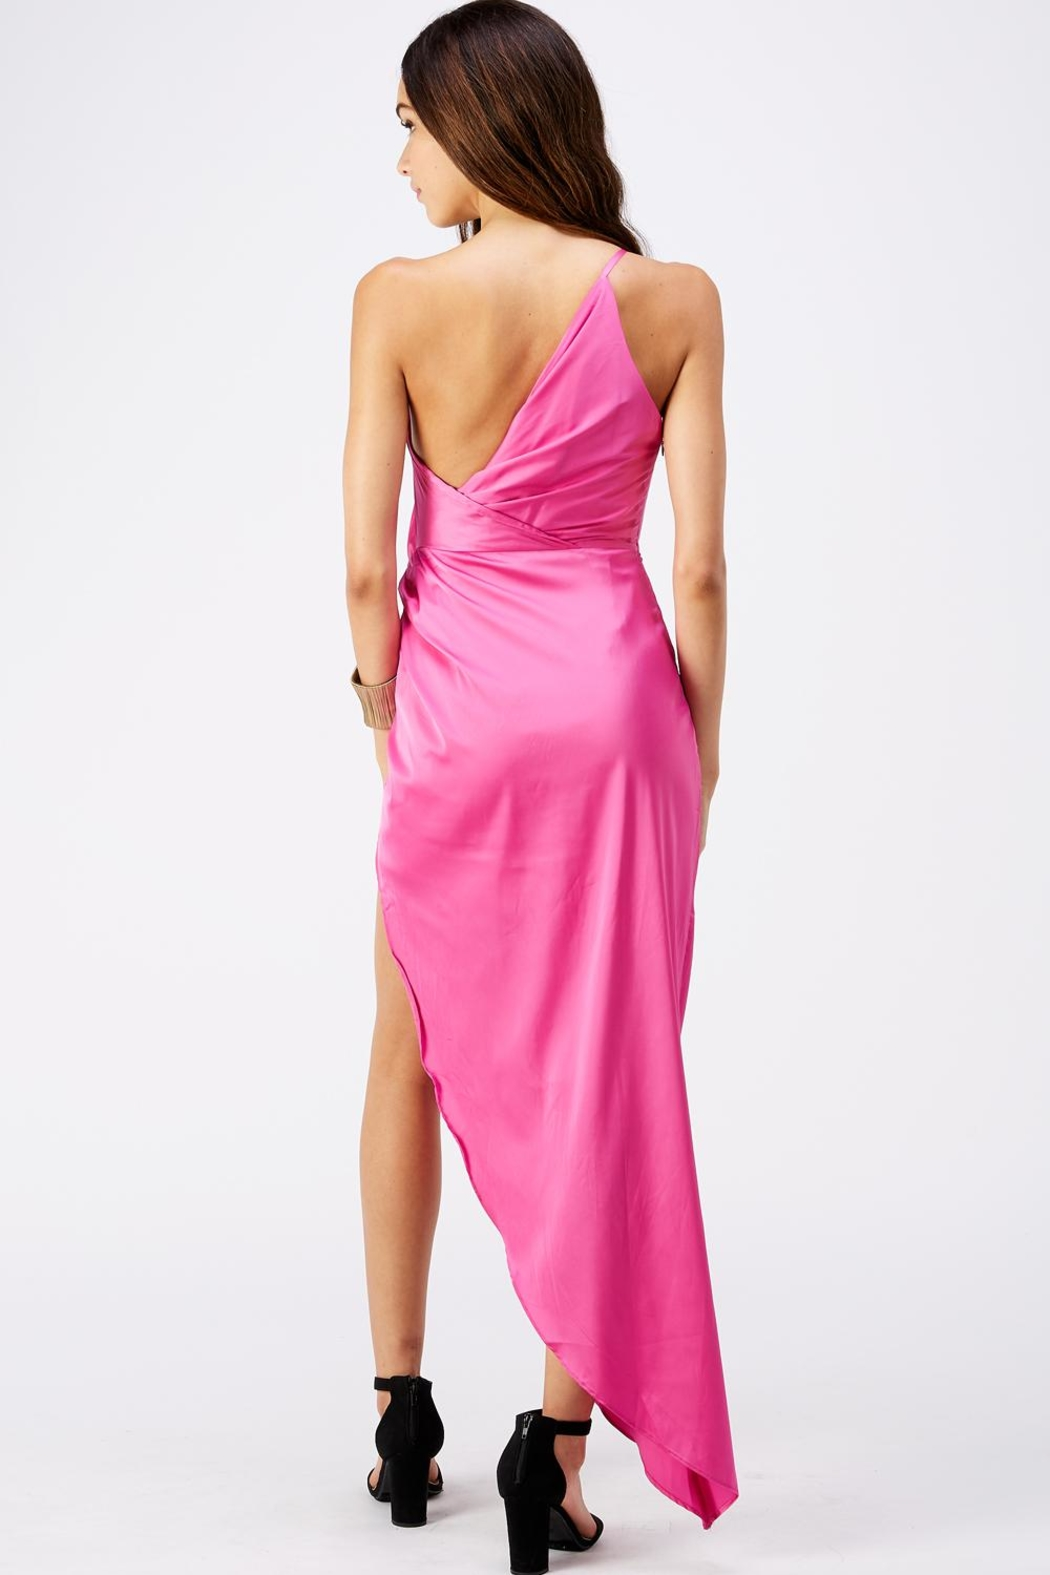 luxxel One Shoulder Dress - Side Cropped Image